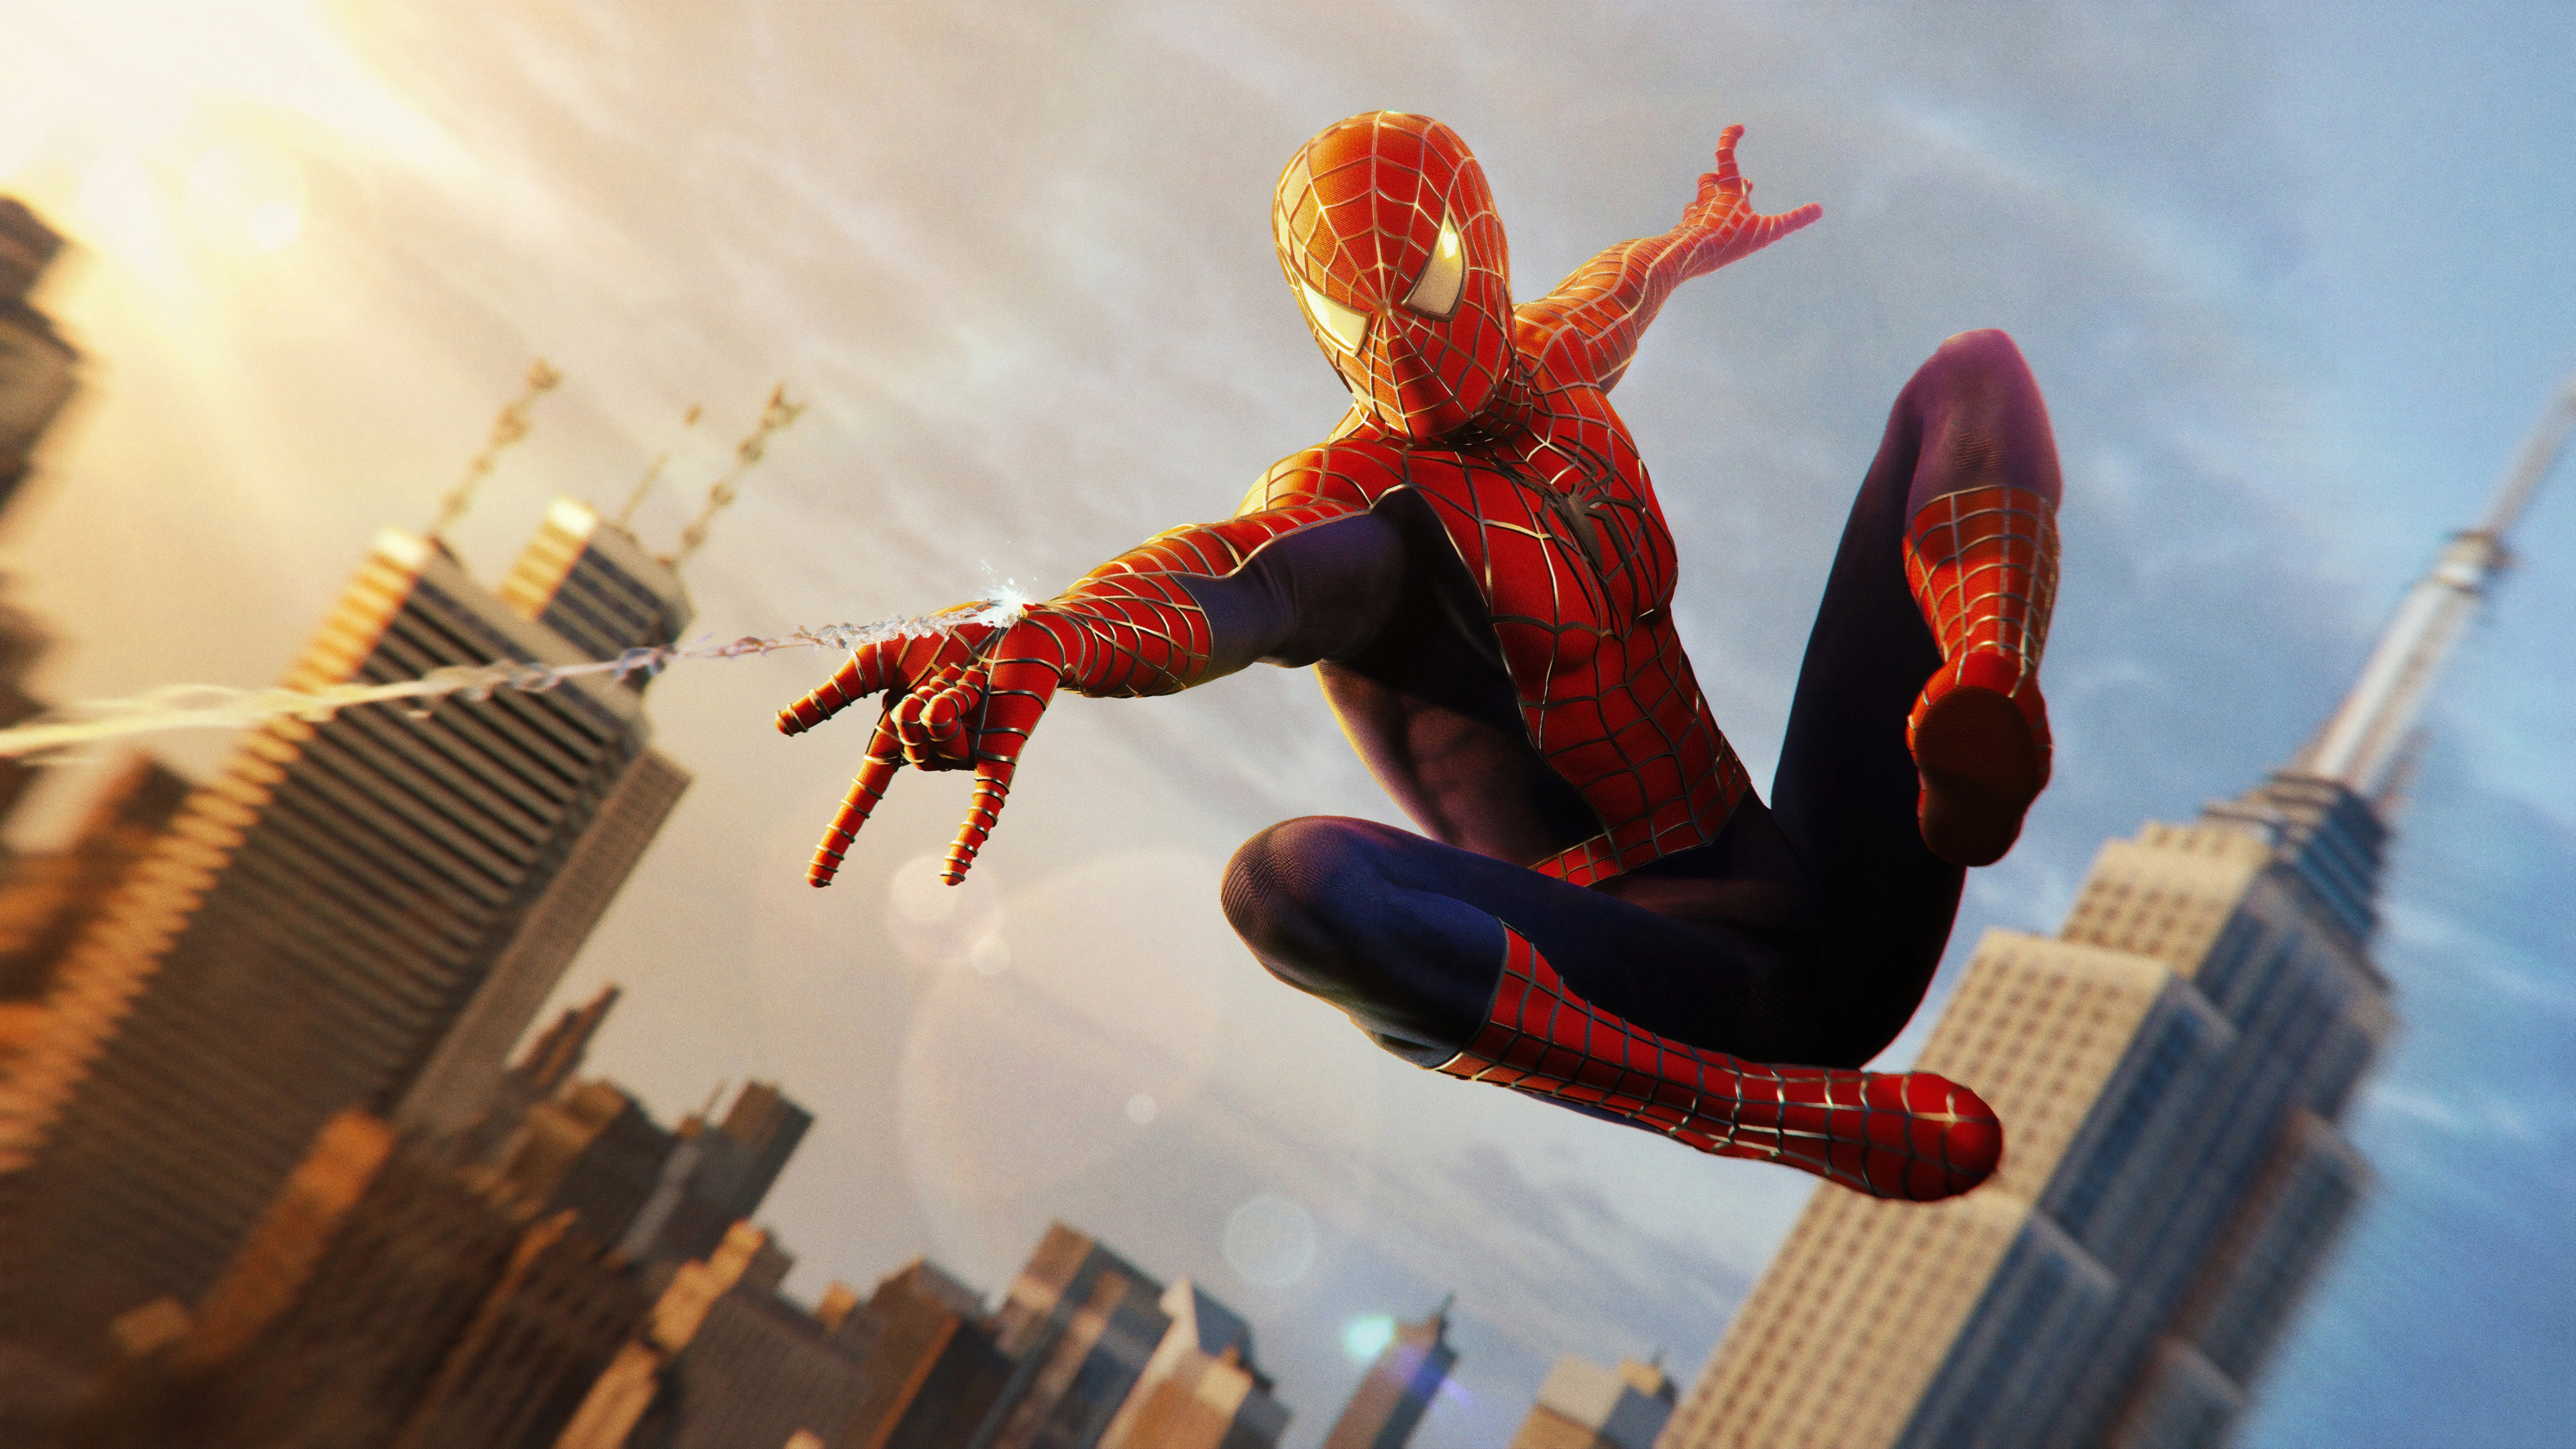 Spider Man Ps4 Wallpaper Spider Man Ps4 Raimi Suit 34232